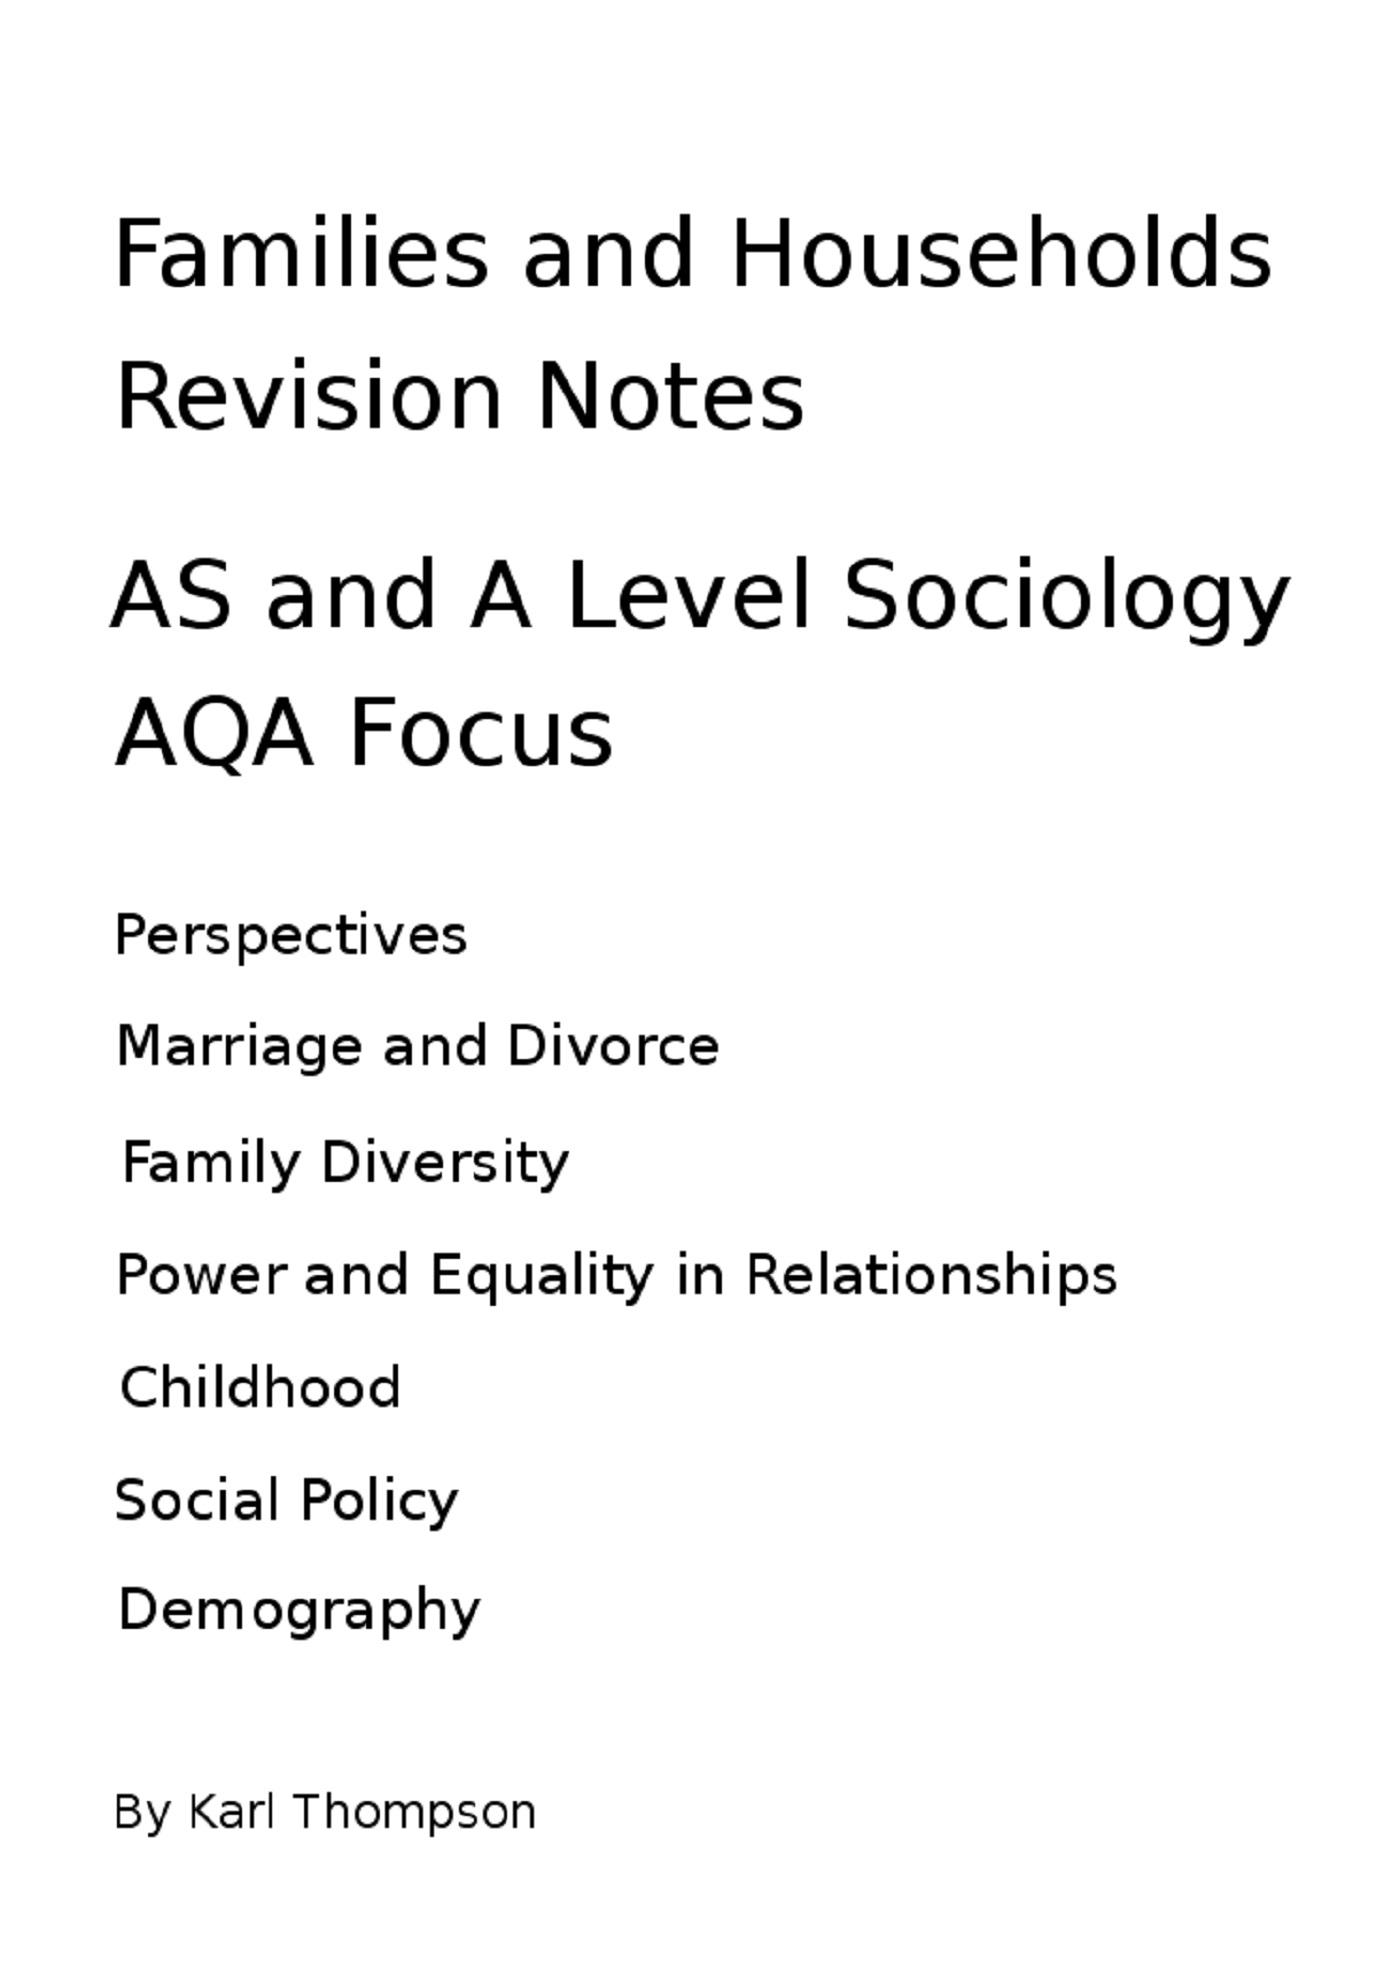 sociological perspective essay the new right view of the family  sociological perspective essay